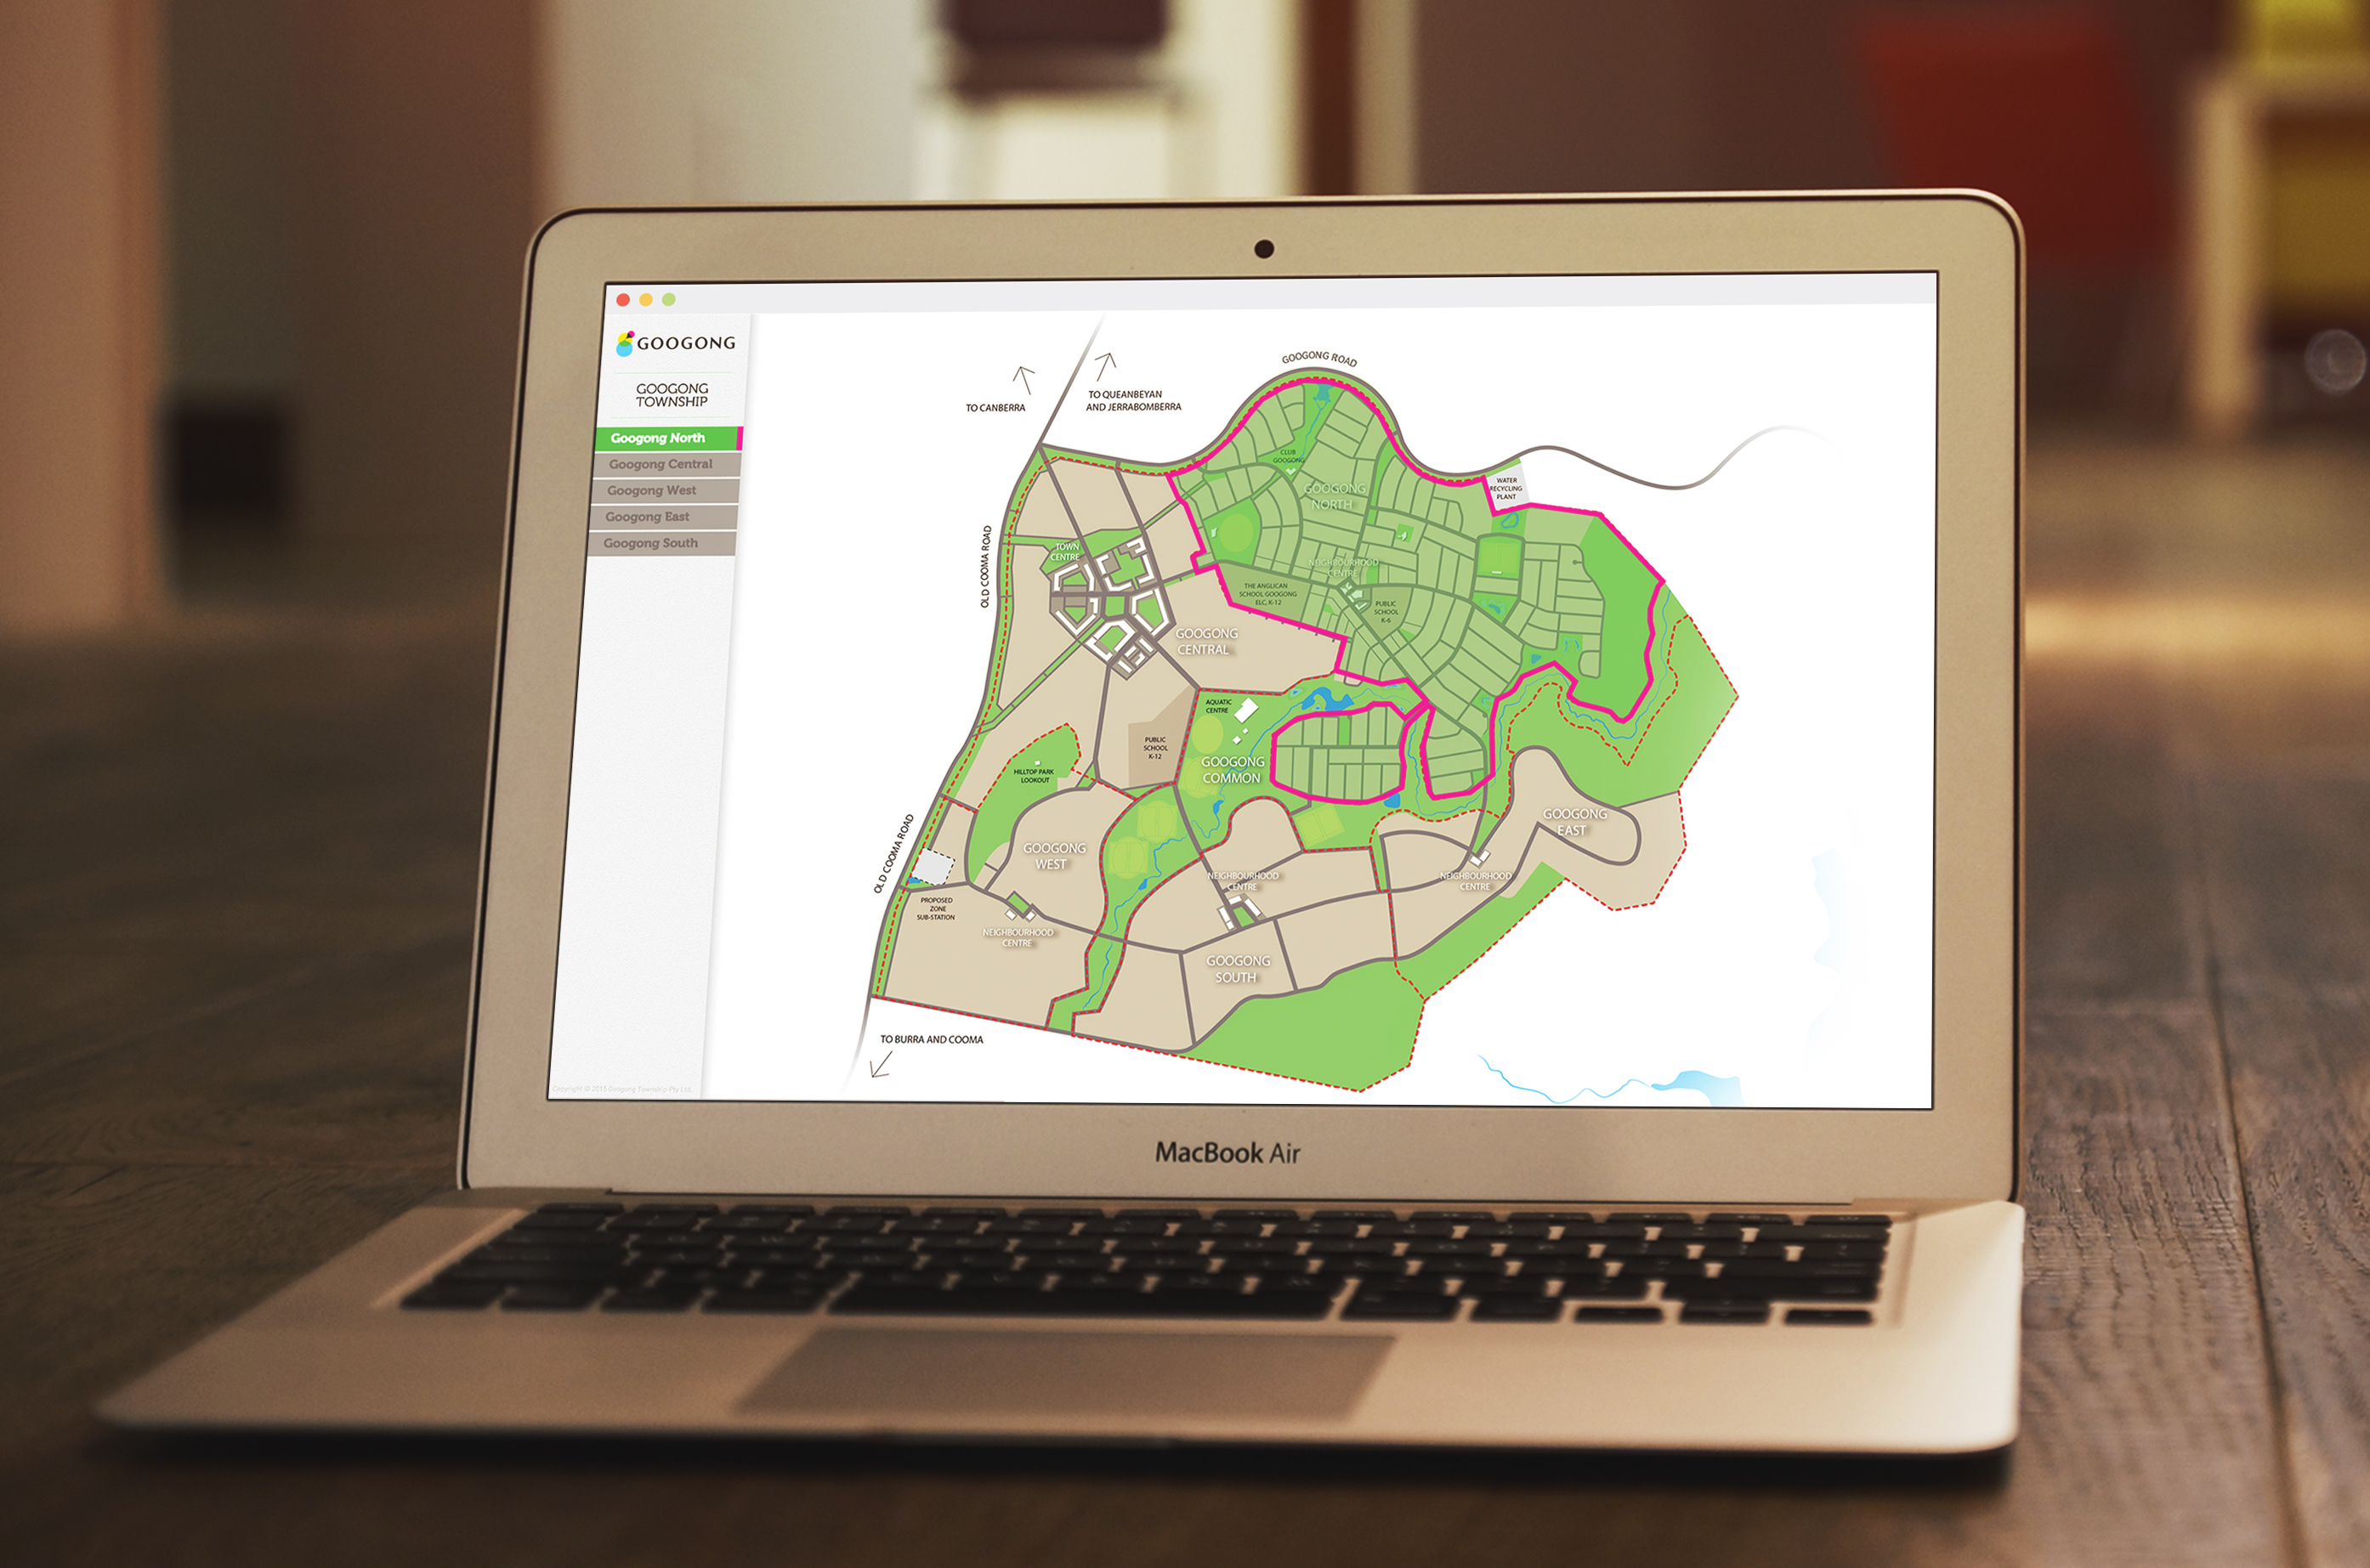 Googong Master plan map opened on an MacBook Air, detailing the open slots for sale.